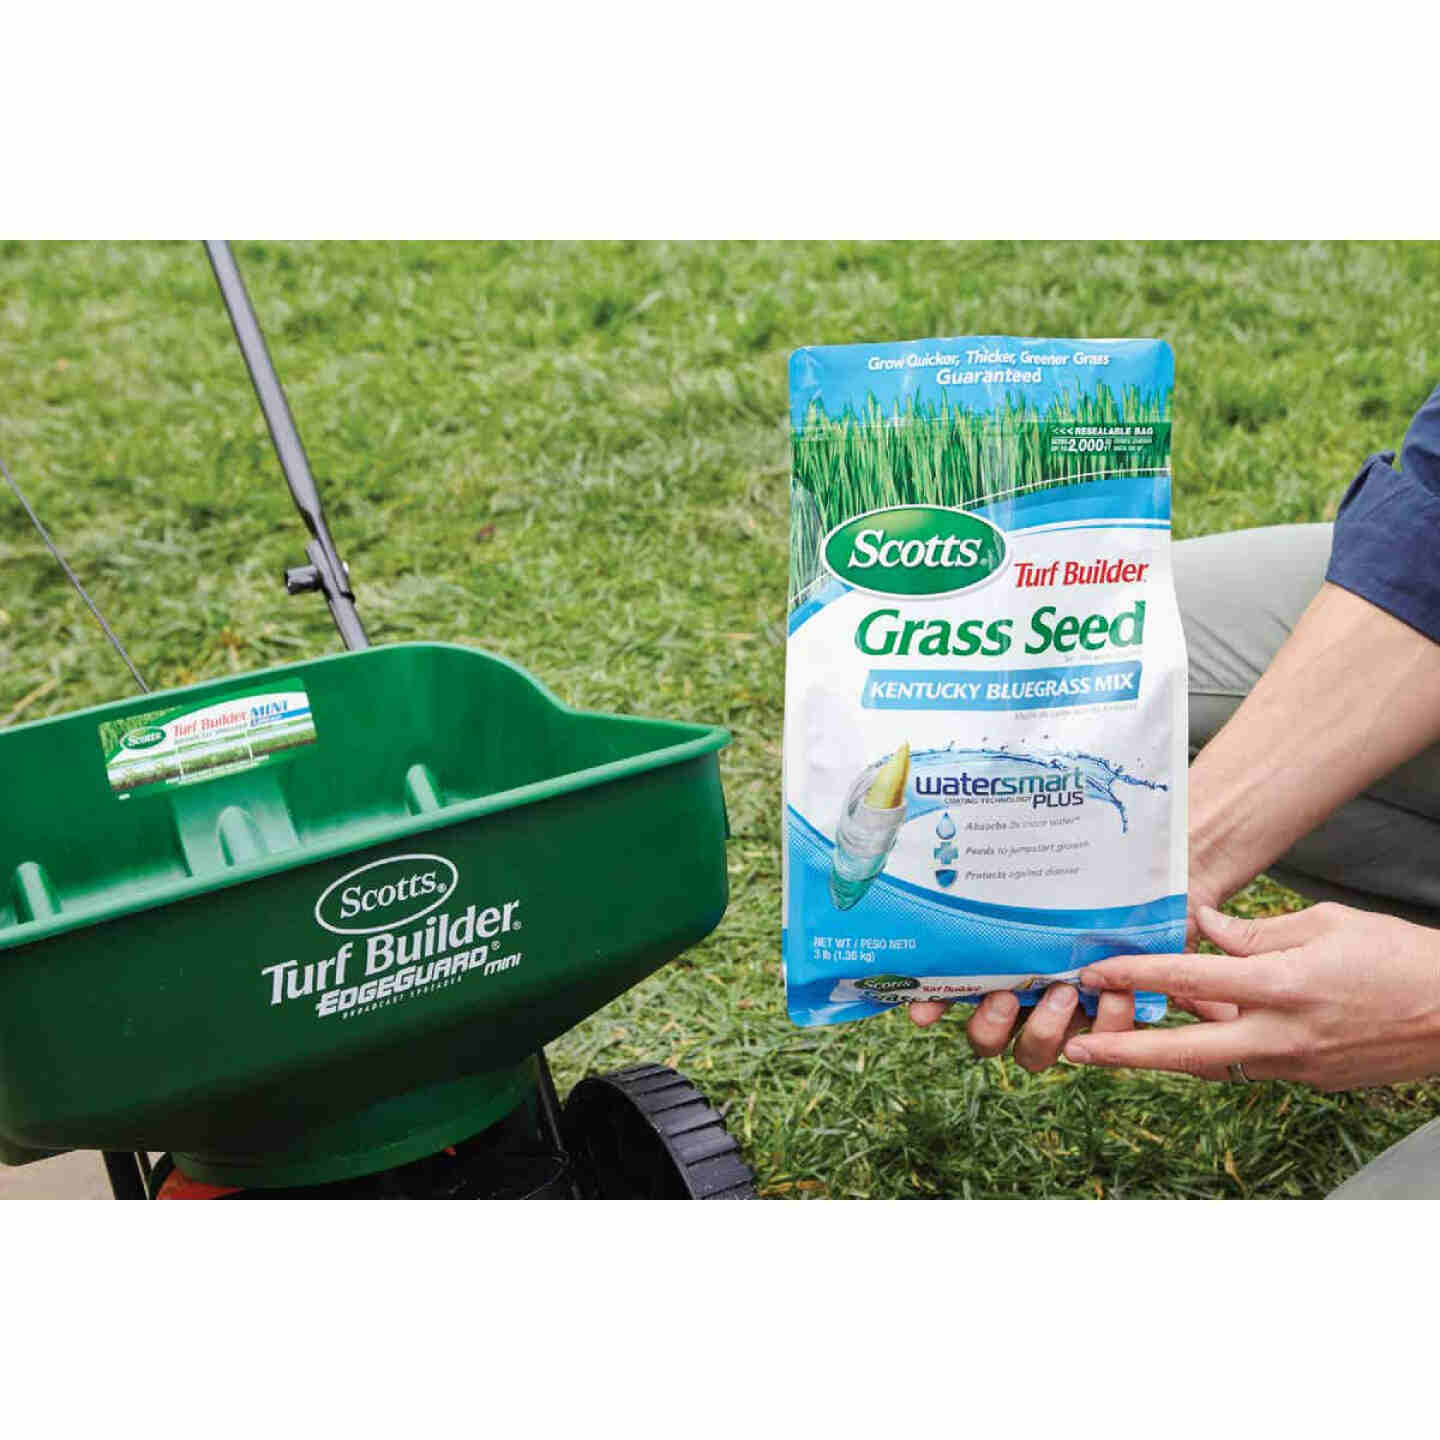 Scotts Turf Builder 3 Lb. Up To 2000 Sq. Ft. Coverage Kentucky Bluegrass Grass Seed Image 2